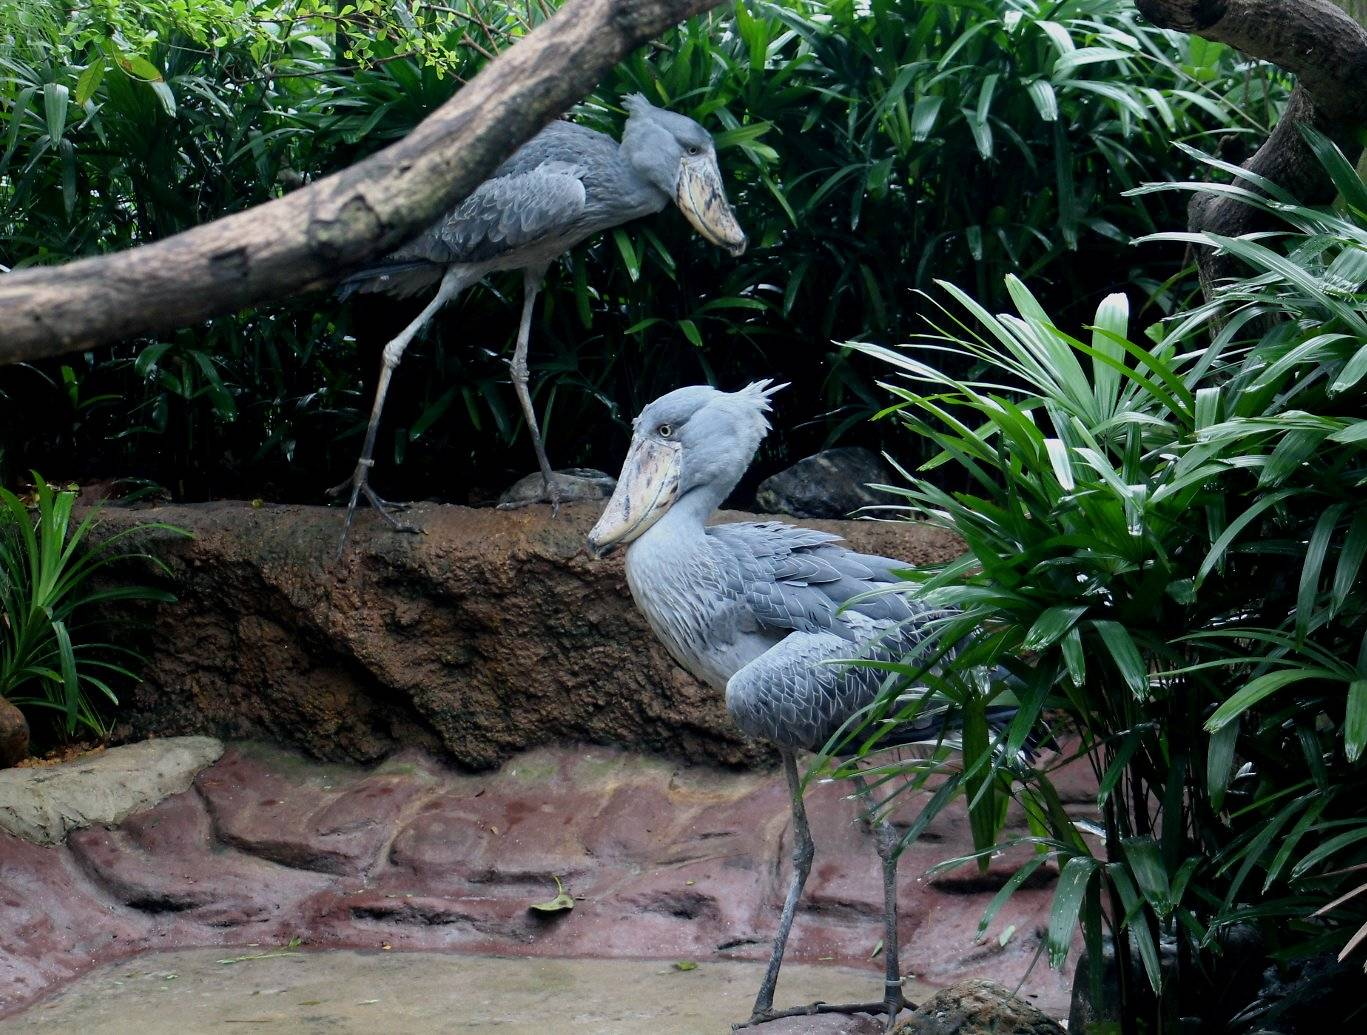 The latest attractions at the Jurong Bird Park are the Shoebill birds. Photo courtesy: Wildlife Reserves Singapore